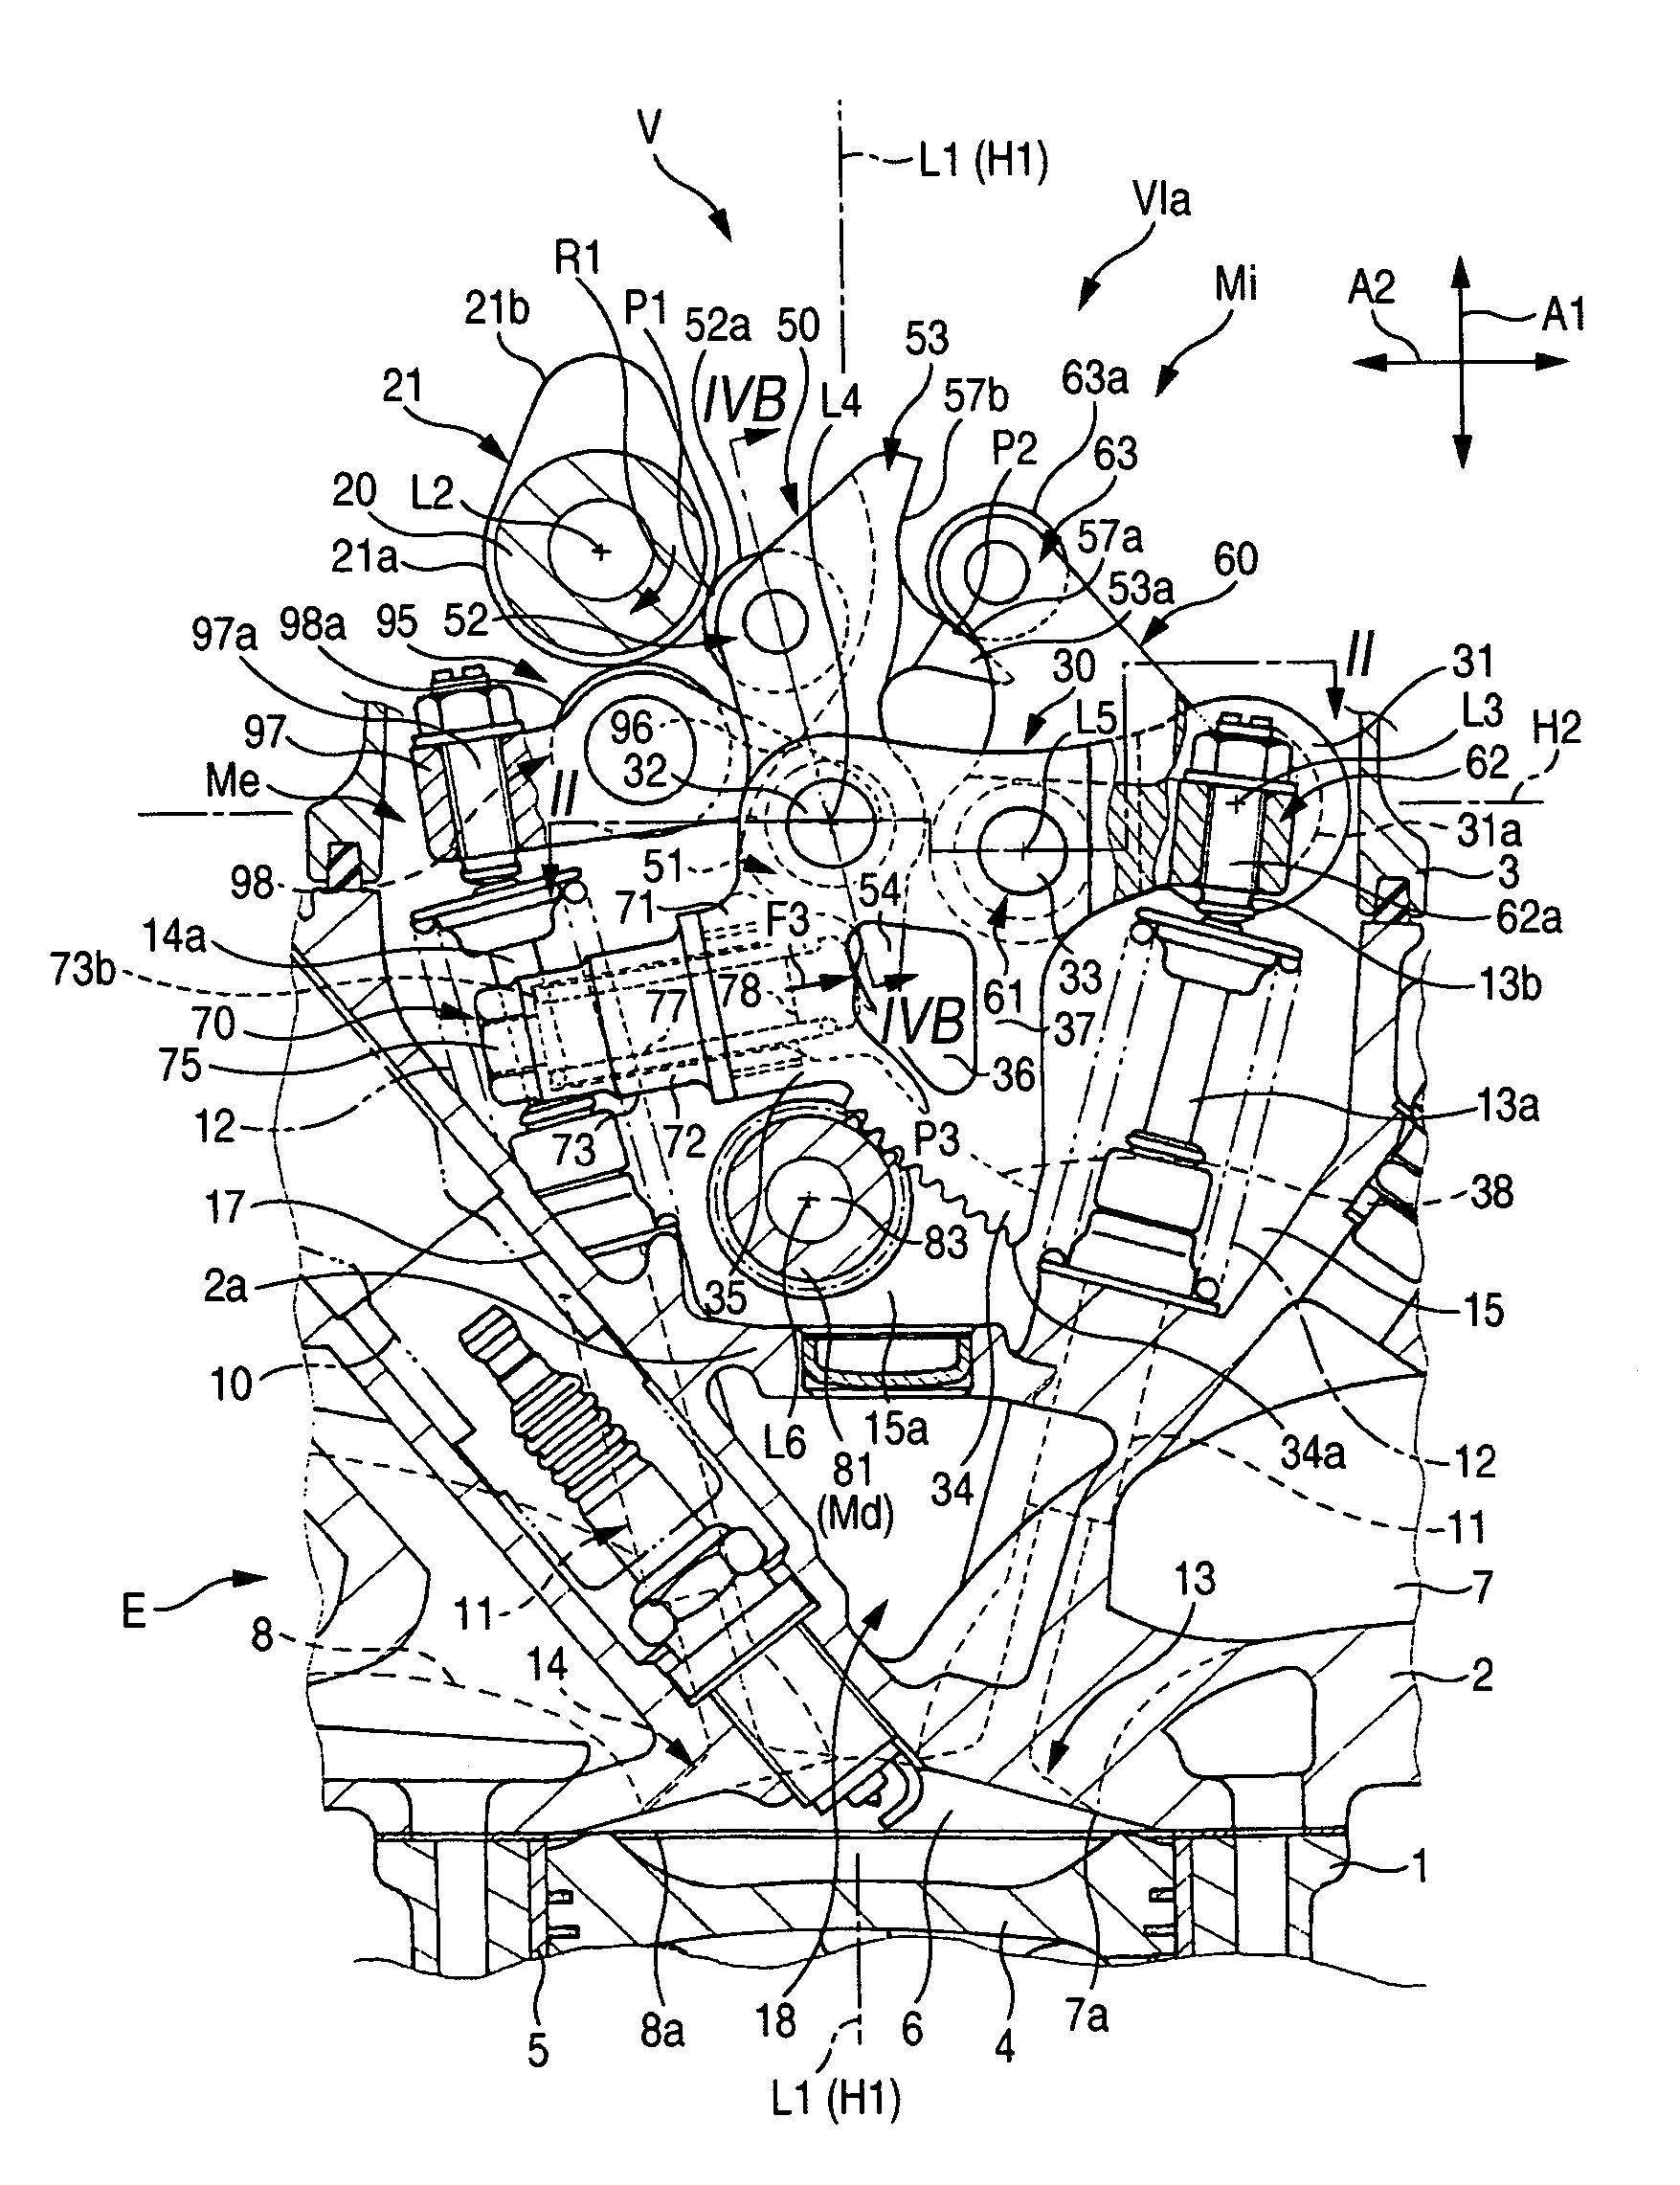 Valve Train Diagram Valve Train Of Internal Bustion Engine Schematic Of Valve Train Diagram